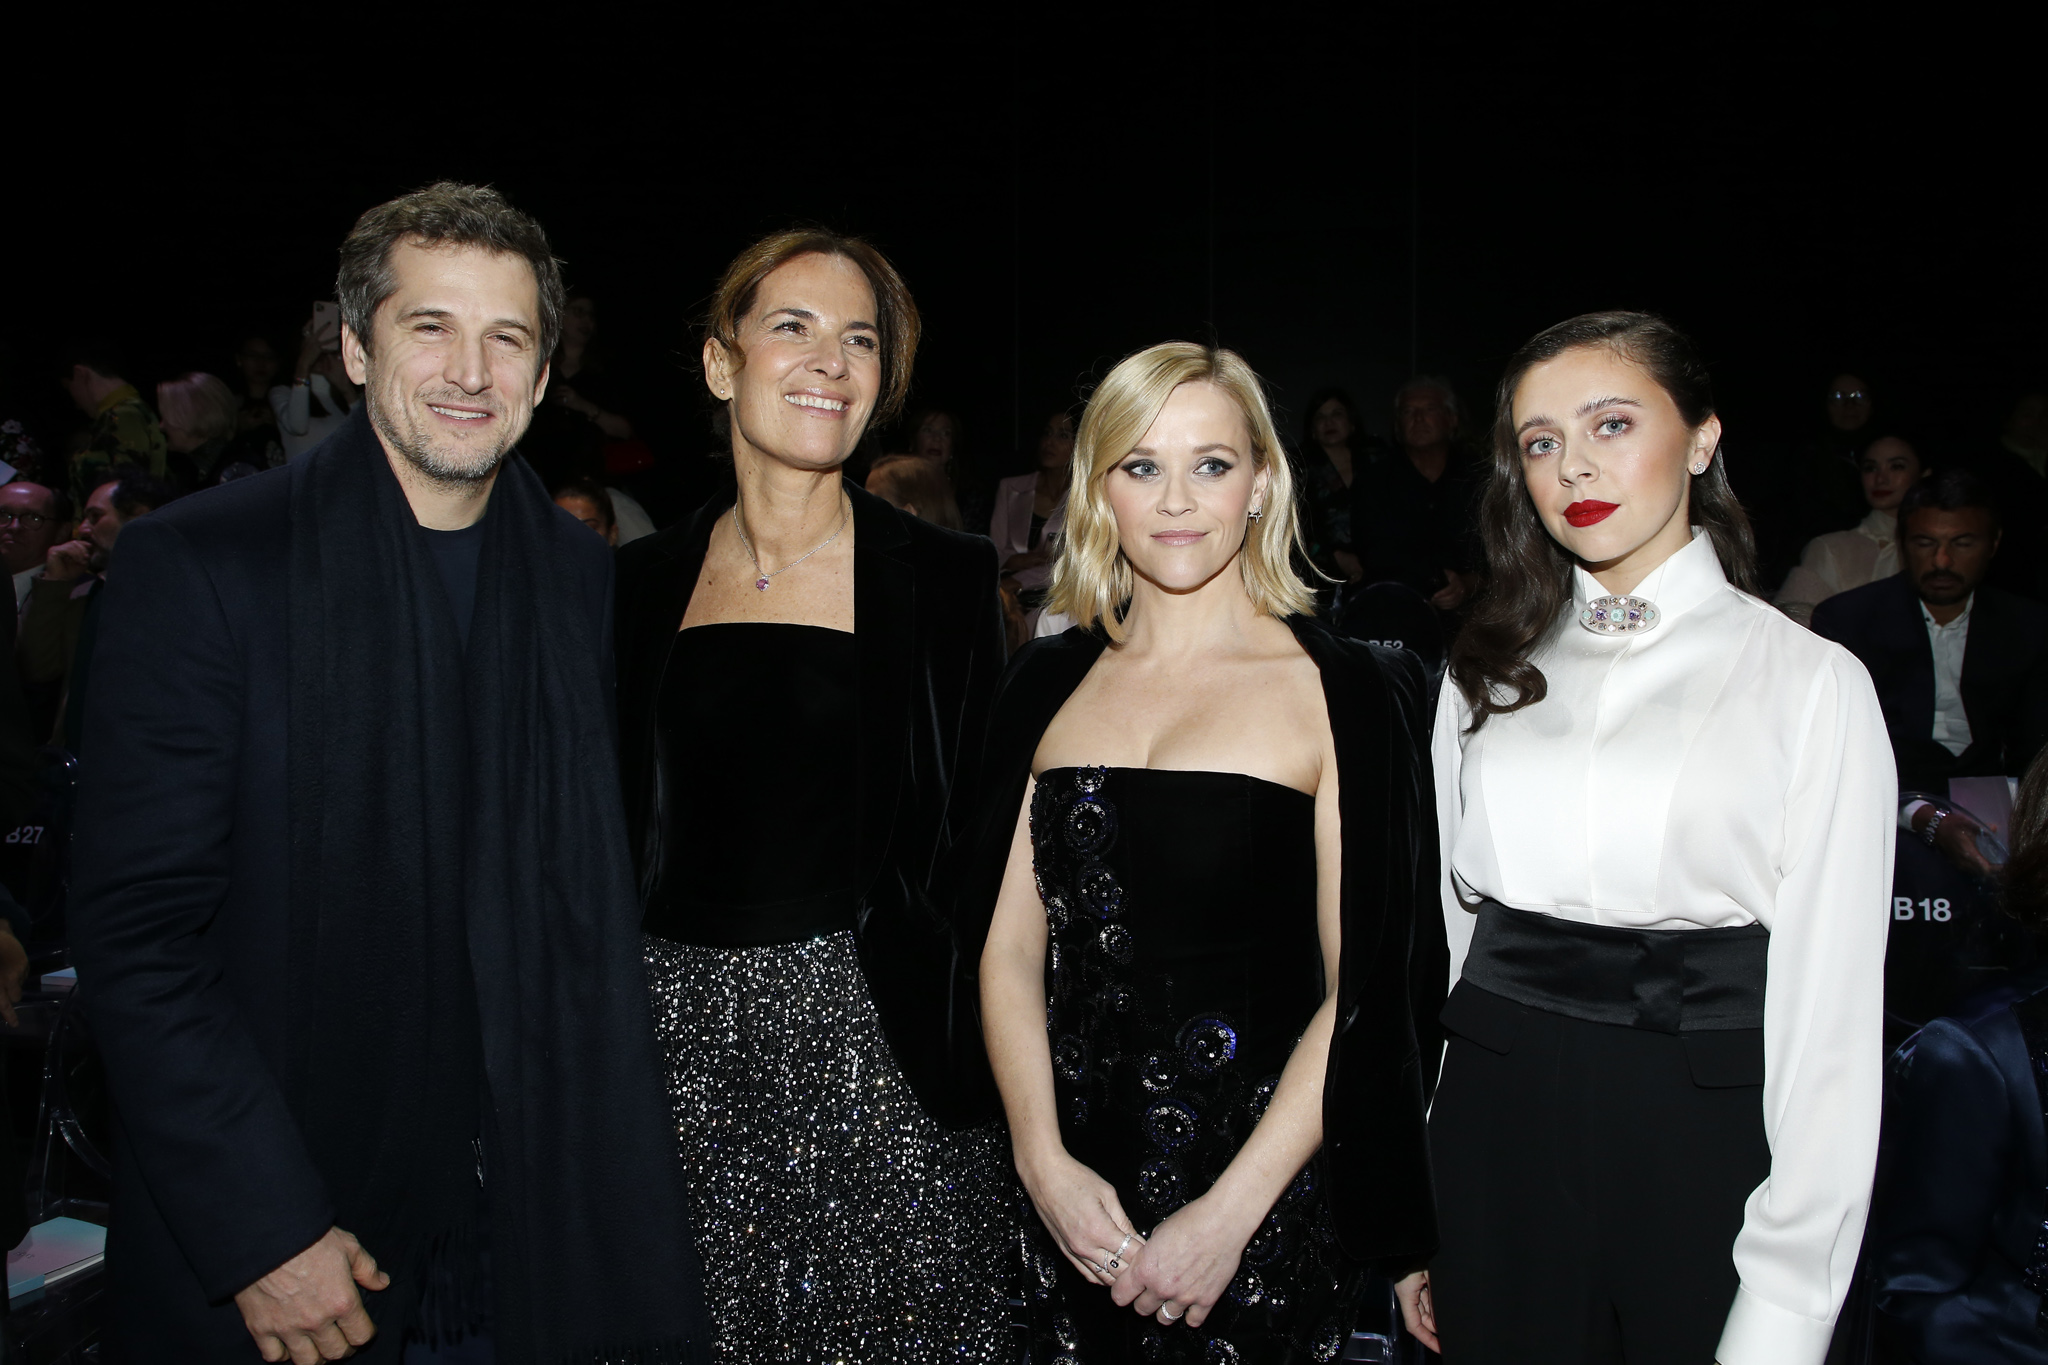 Guillaume Canet, Roberta Armani, Reese Witherspoon and Bel Powley in the front row